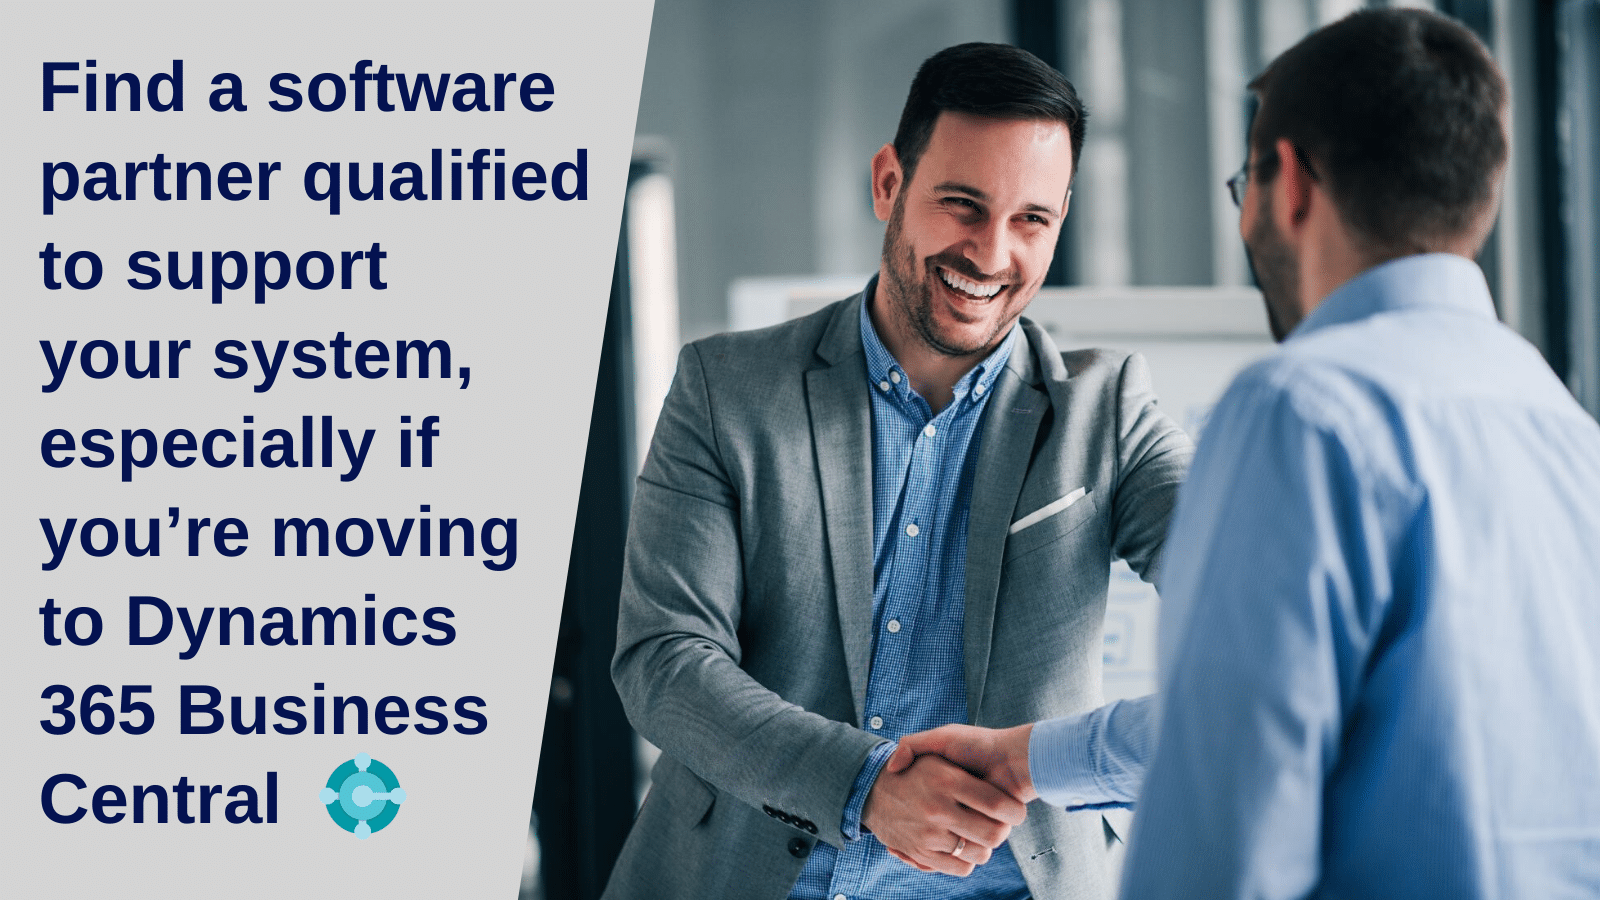 Find a software partner qualified to support your system.